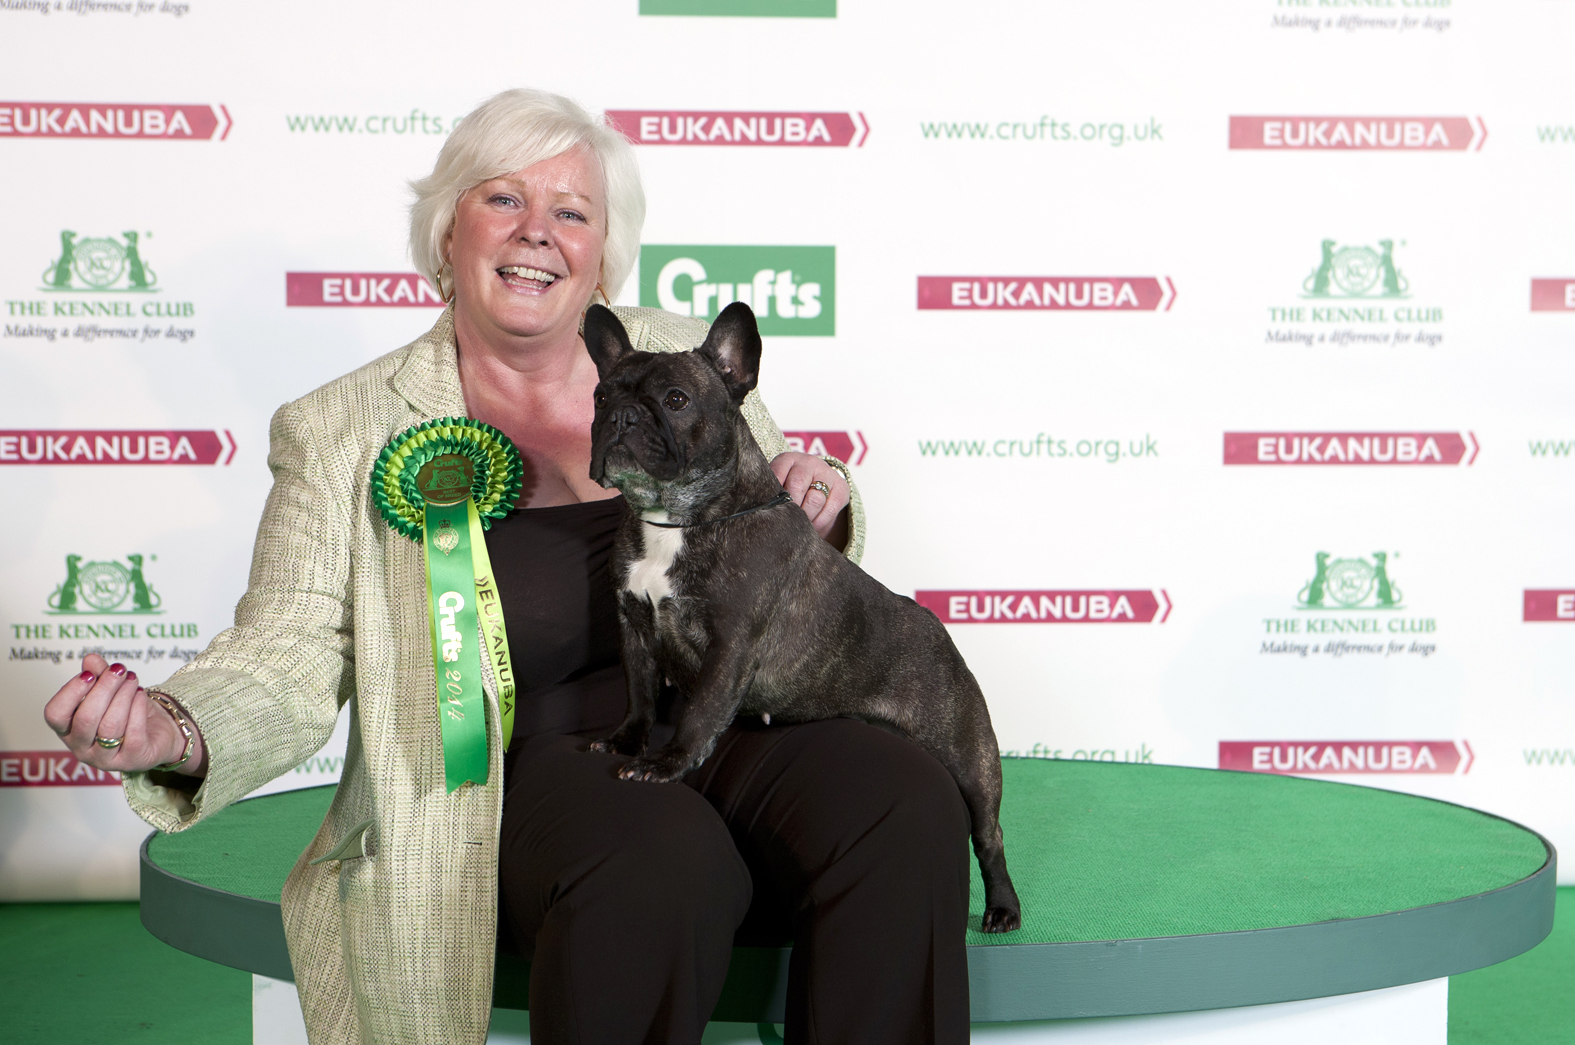 Penny, who was named Best of Breed at Crufts, with proud owner Ann Wildman